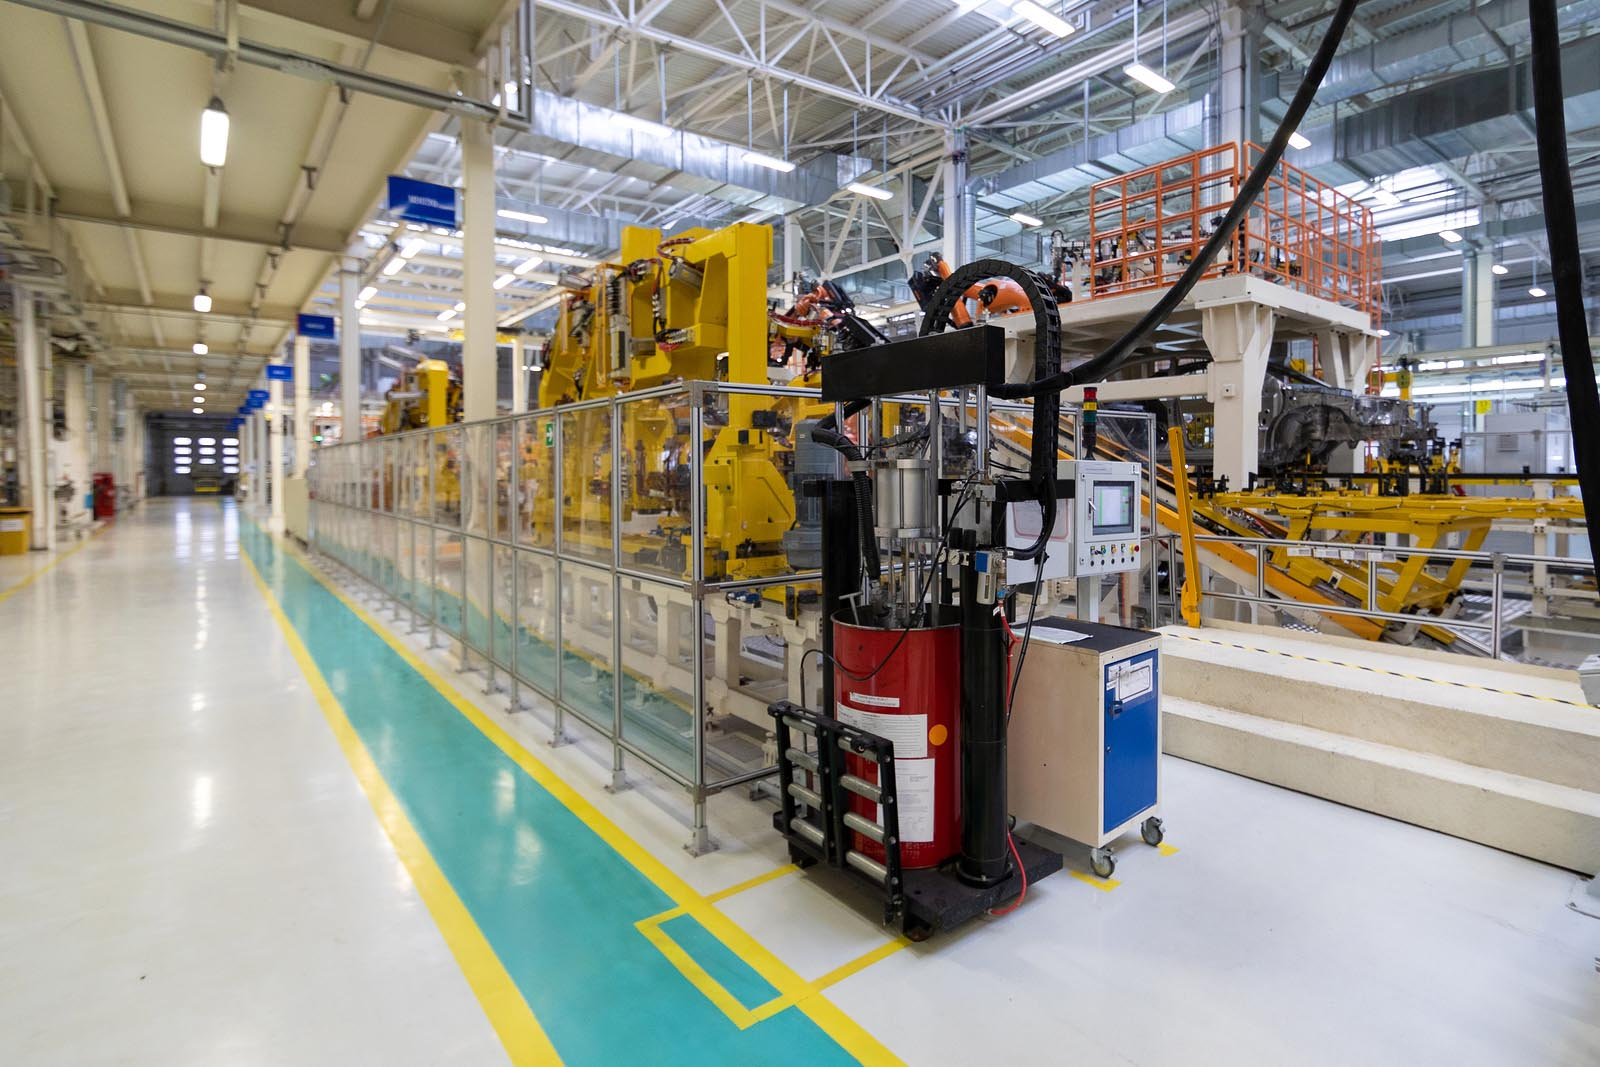 Manufacturing plant safety